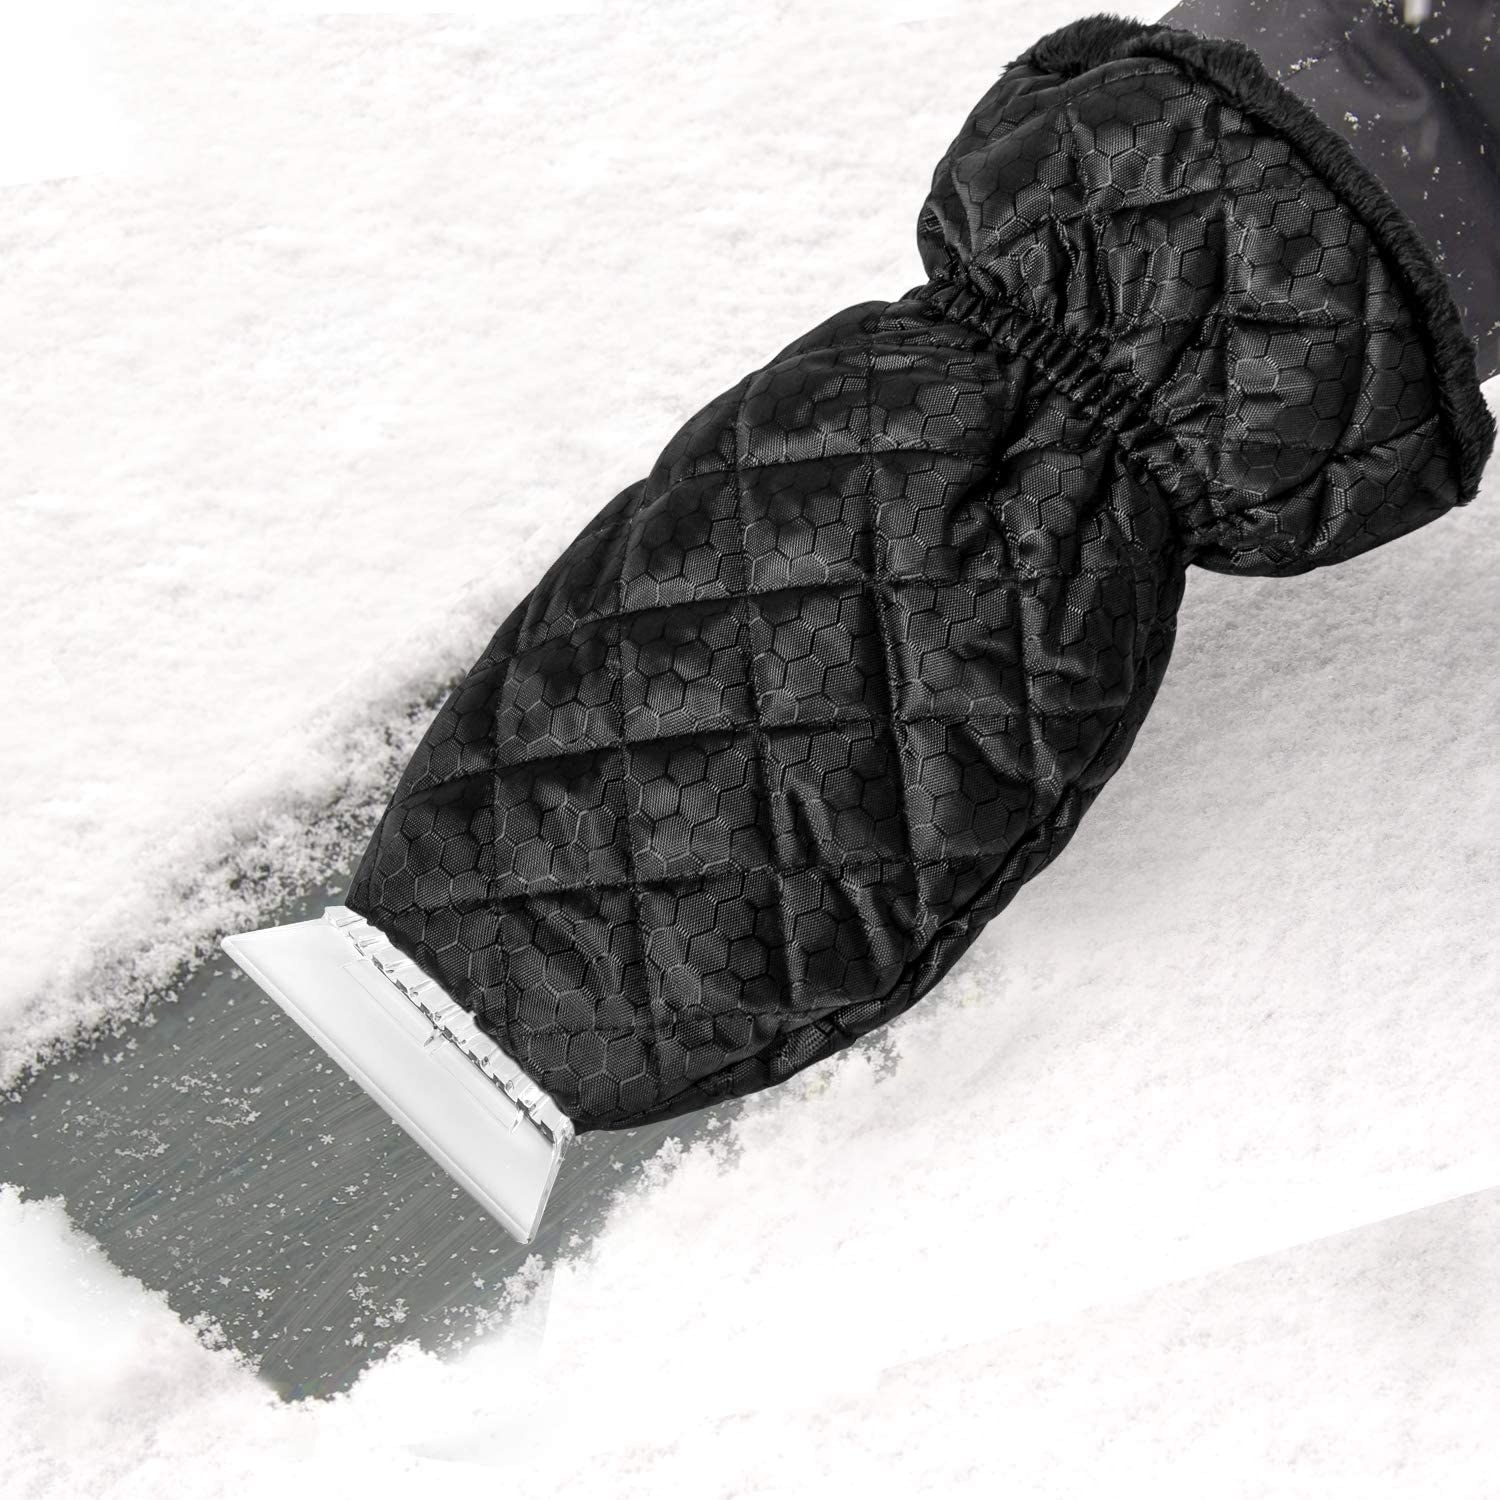 The ice scraper with attached gloved scraping snow and ice off of a windshield